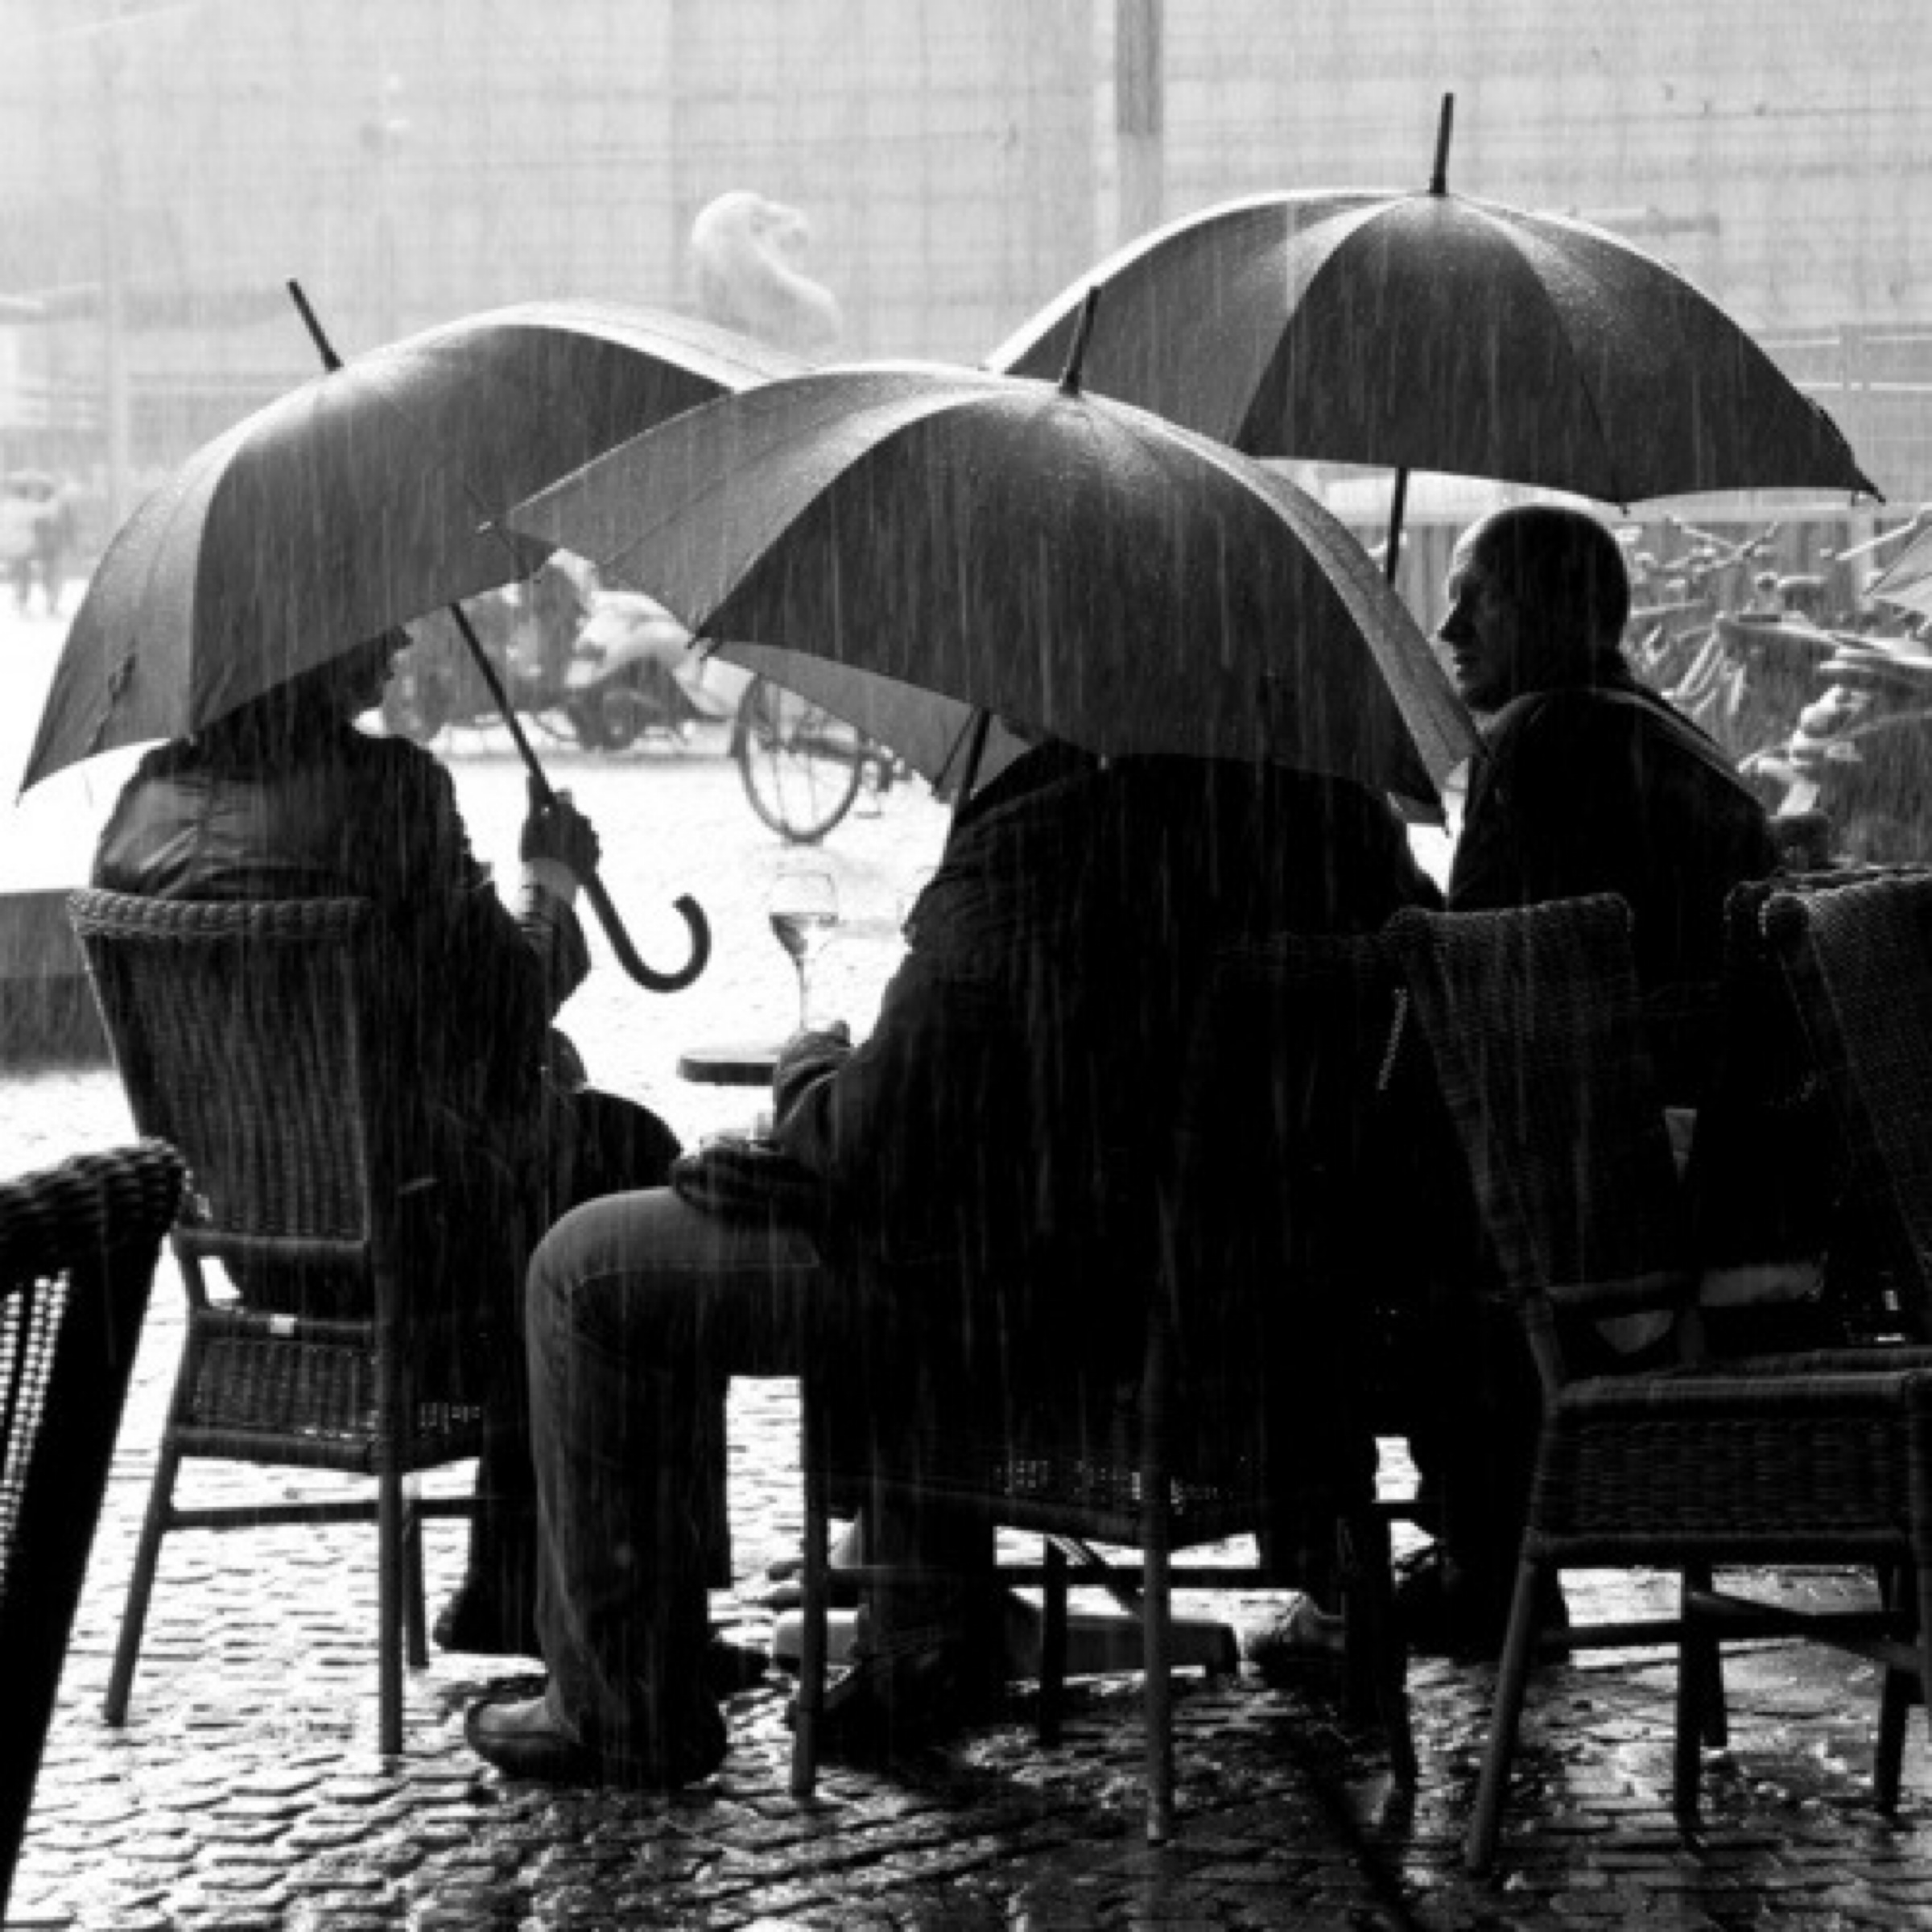 The Man Has Style - Rainy Days